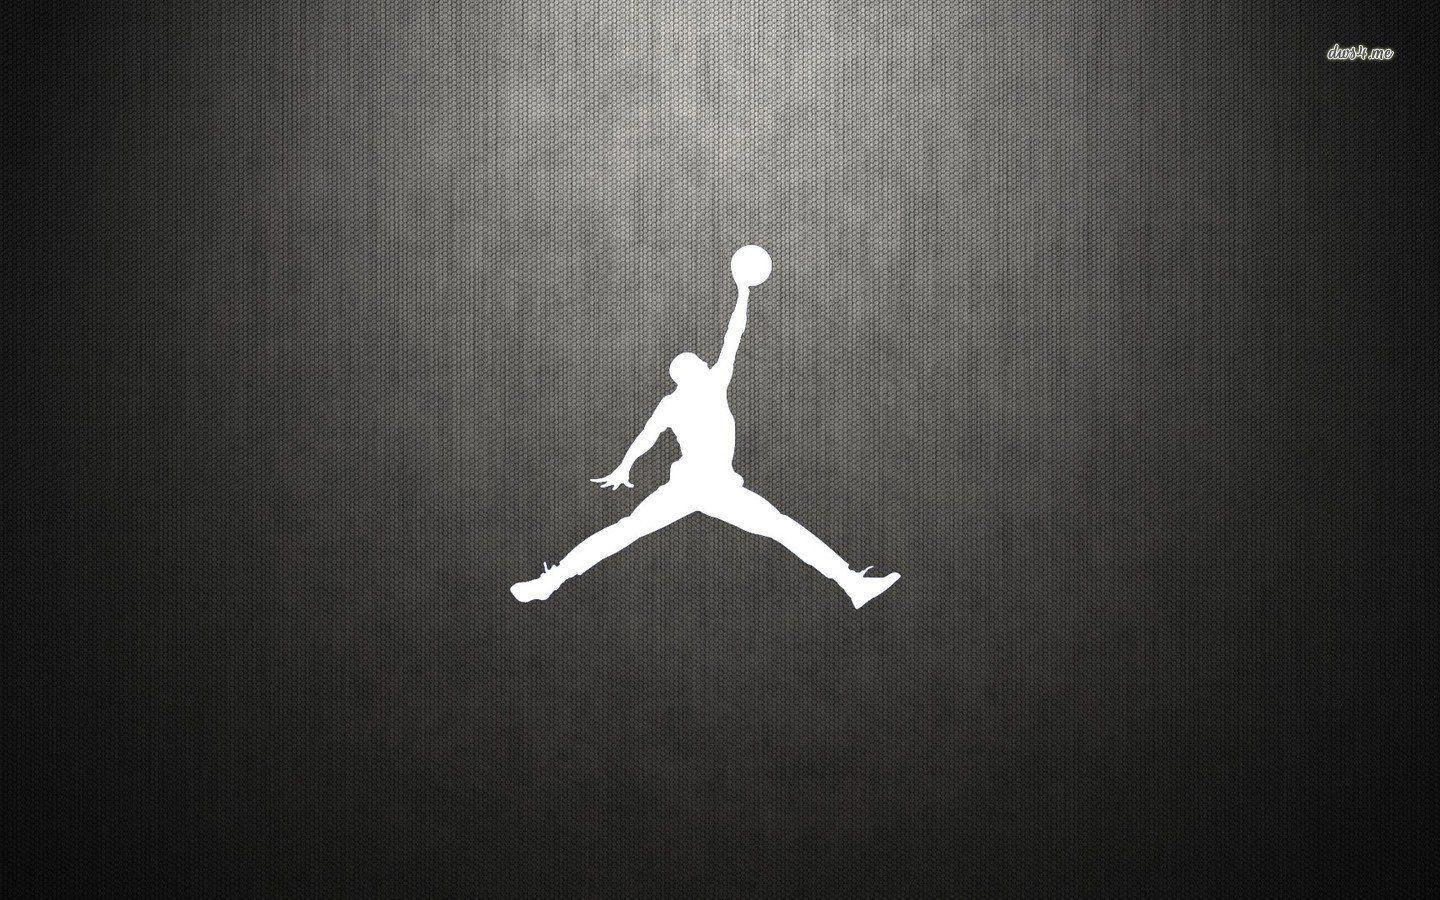 jumpman logo wallpaper mash - photo #29